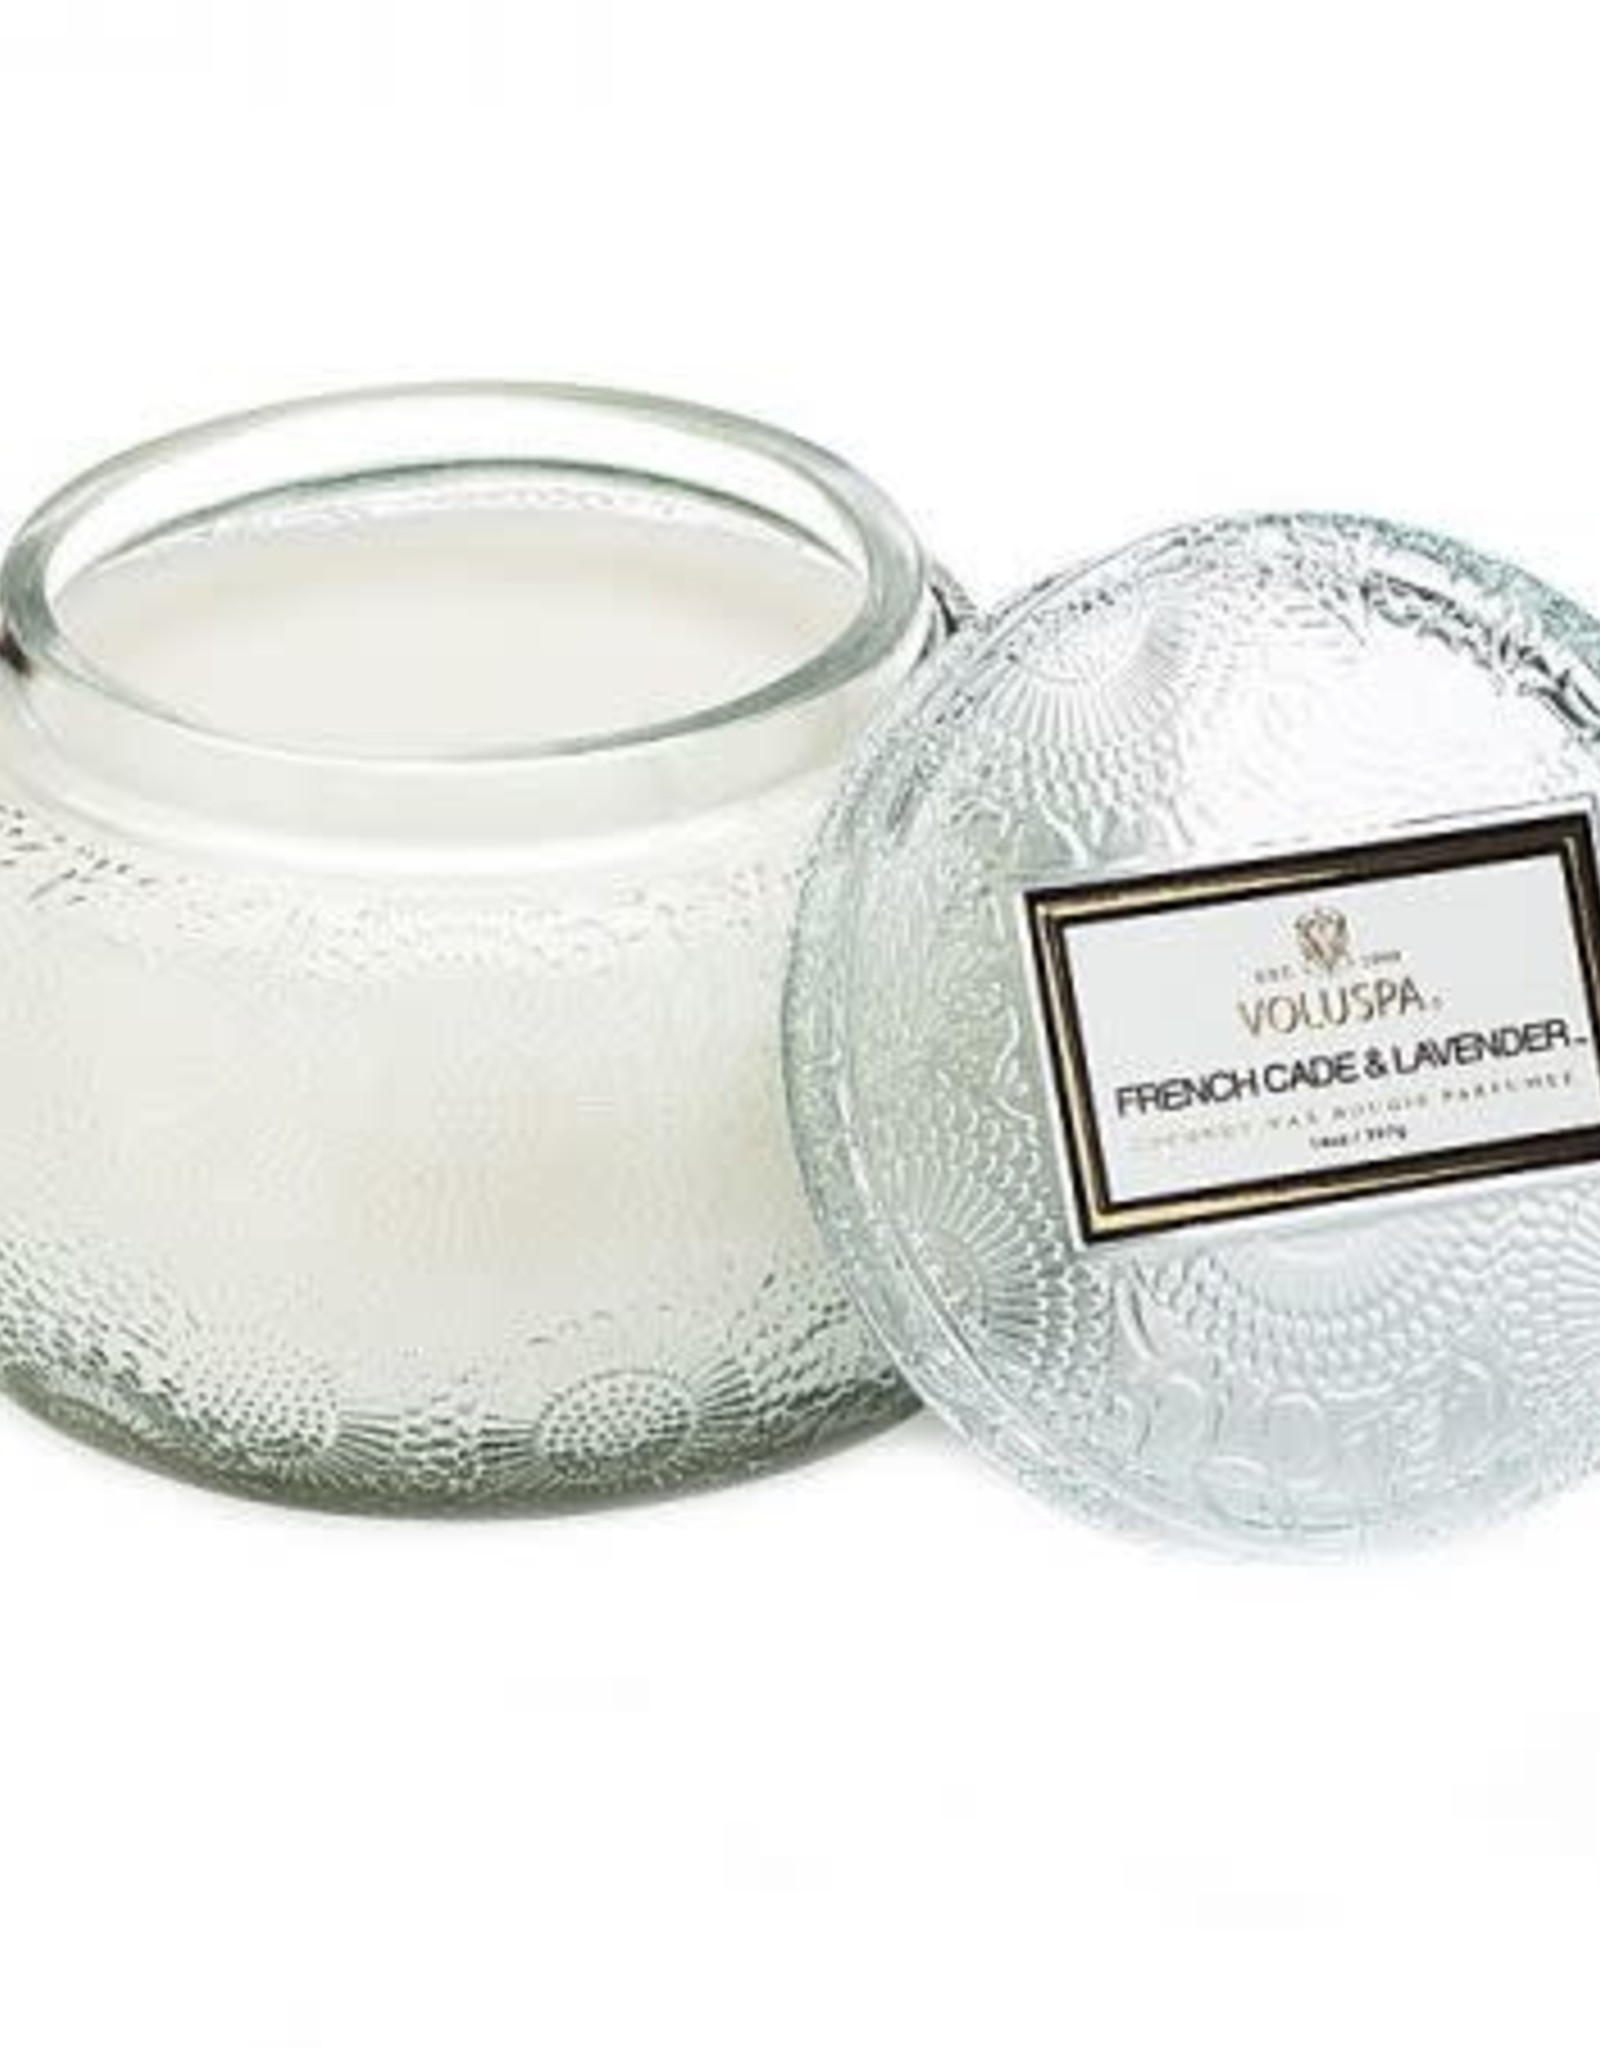 Voluspa Embossed Glass Chawan Bowl Candle With Lid